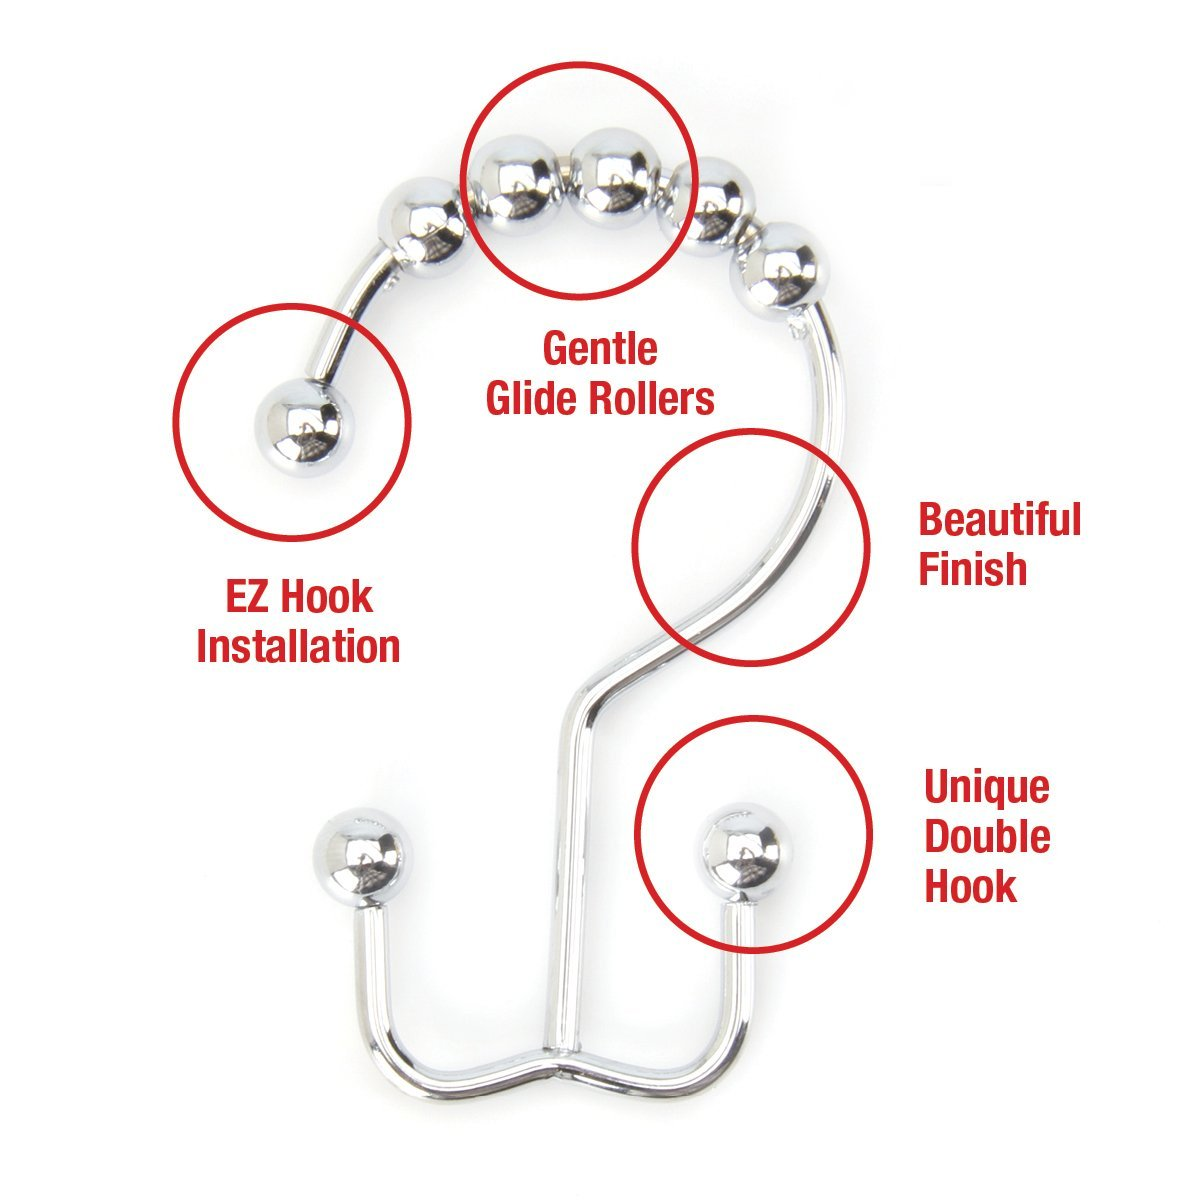 Polished Chrome Double Hook Shower Curtain Hooks Shower Curtain Rings Set 12 Pack Stainless Steel